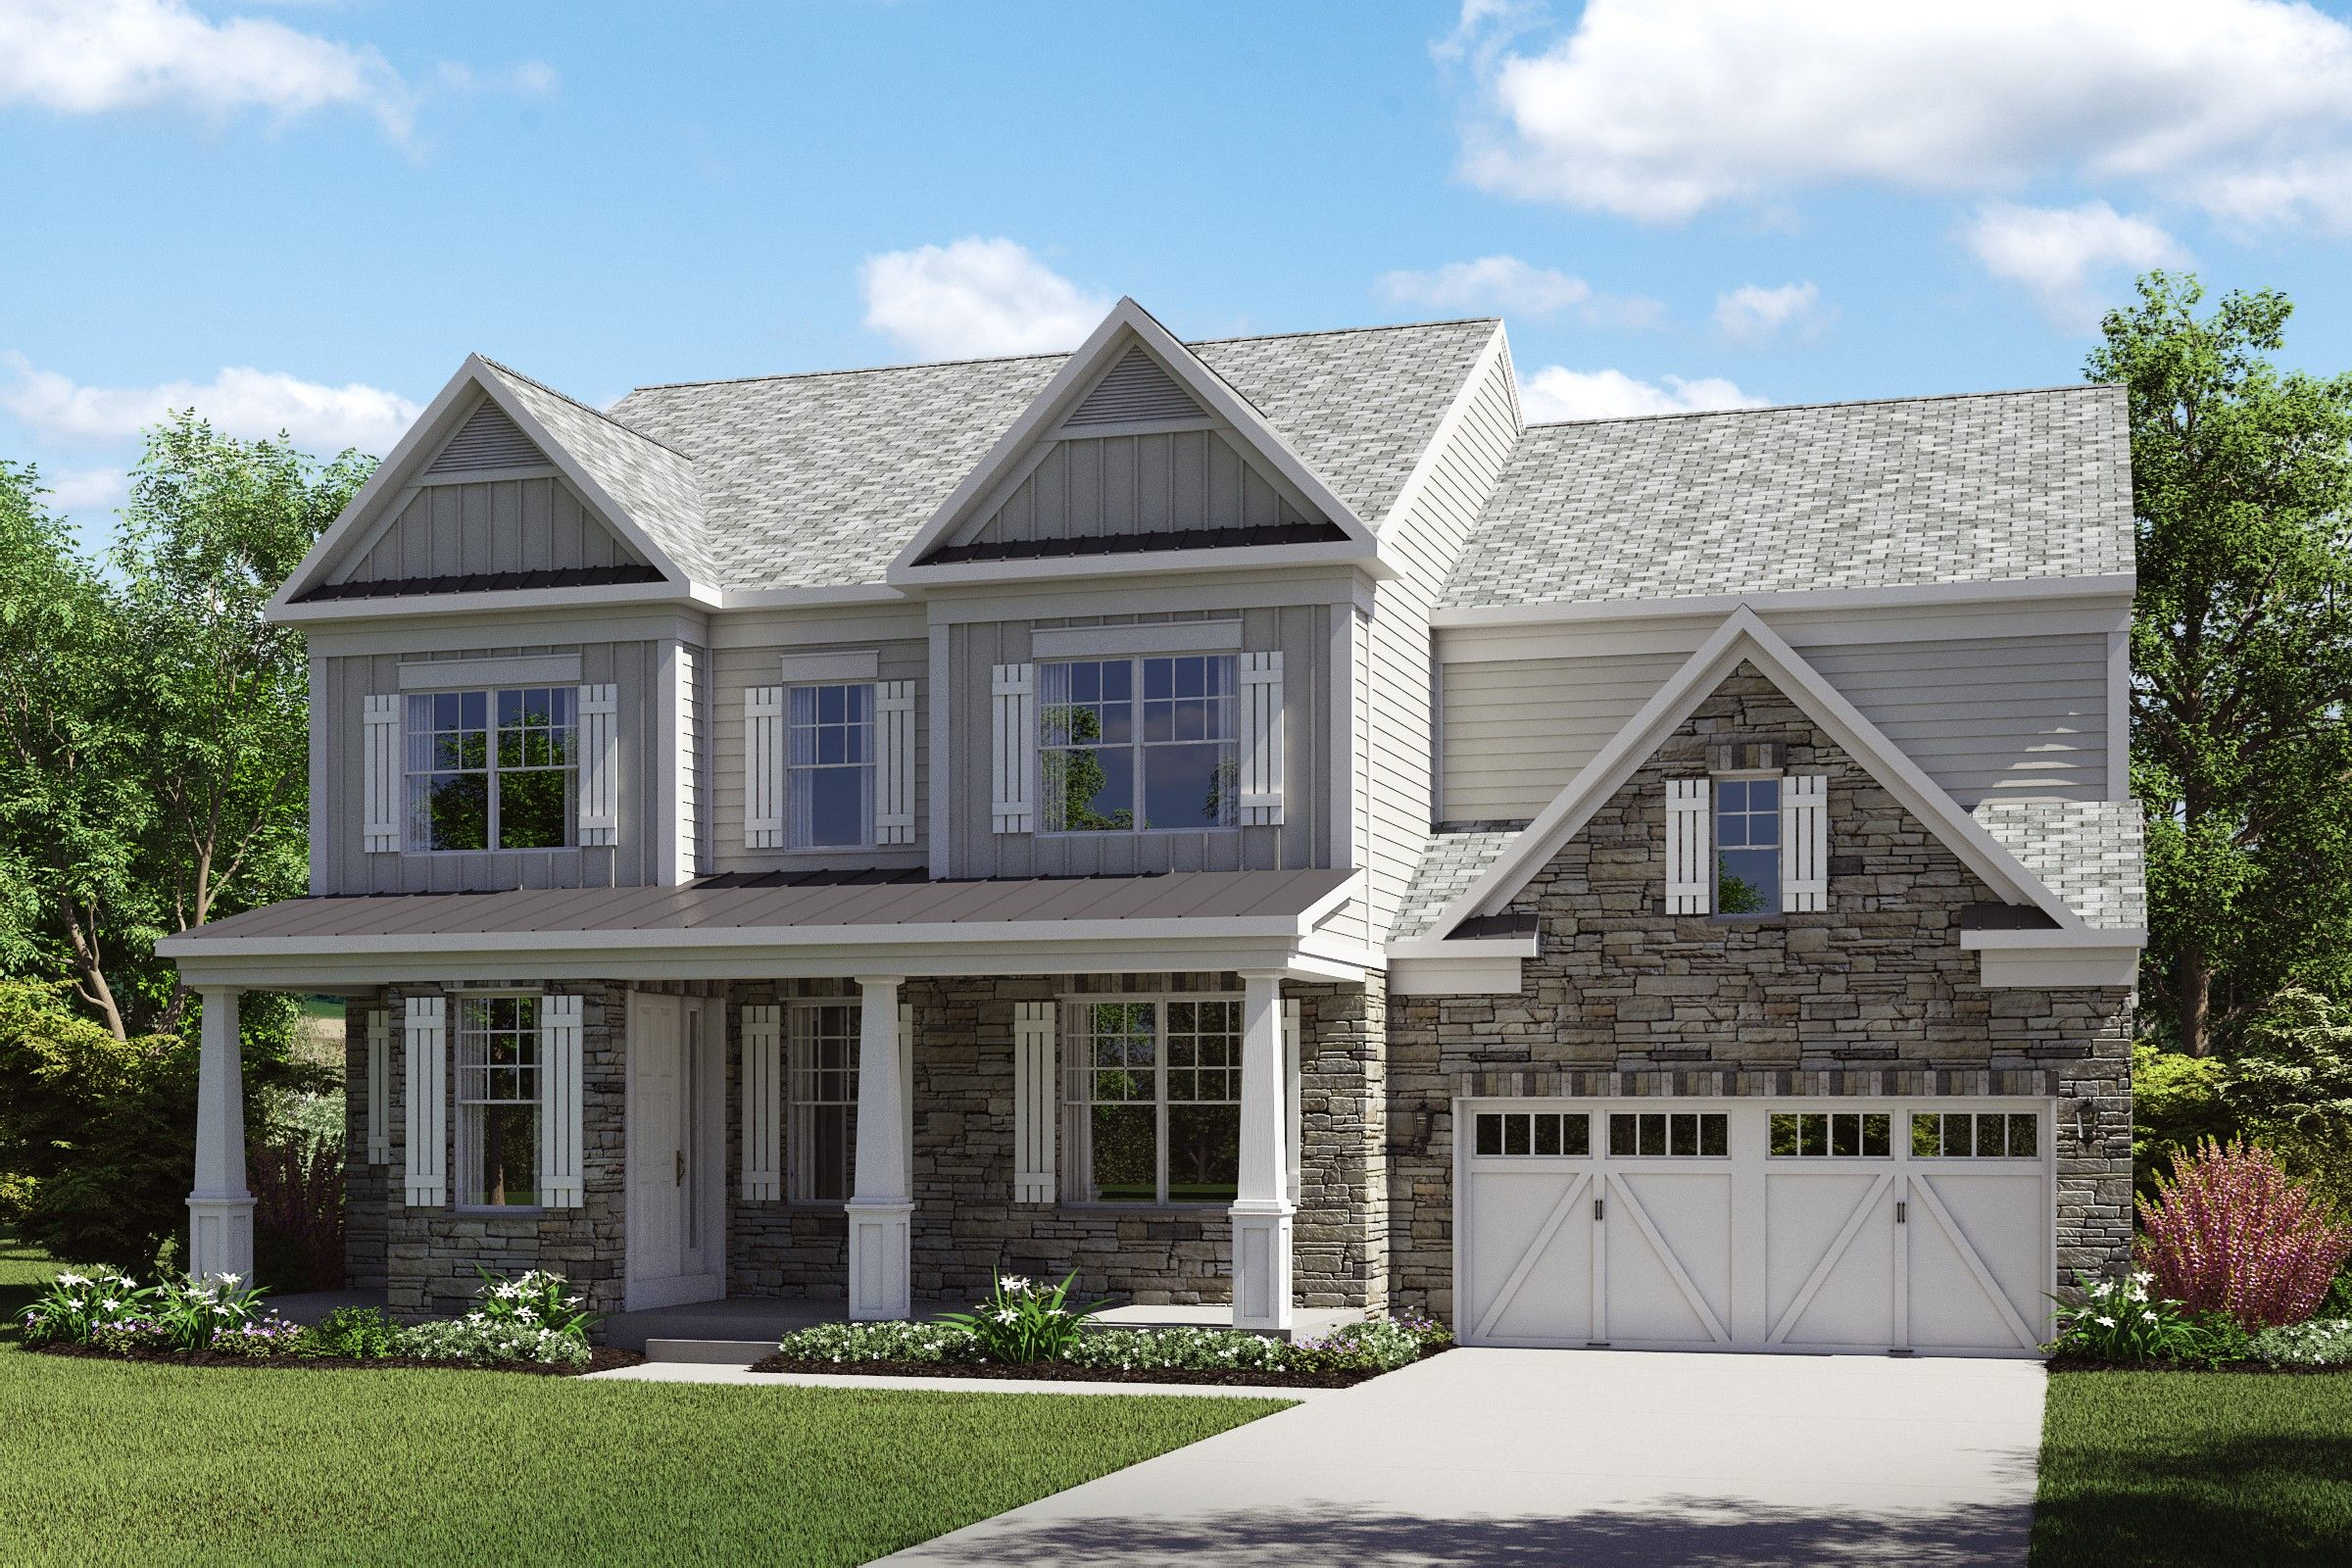 Single Family for Active at Vintage Park - Thorndale Cranbury Road East Brunswick Township, New Jersey 08816 United States